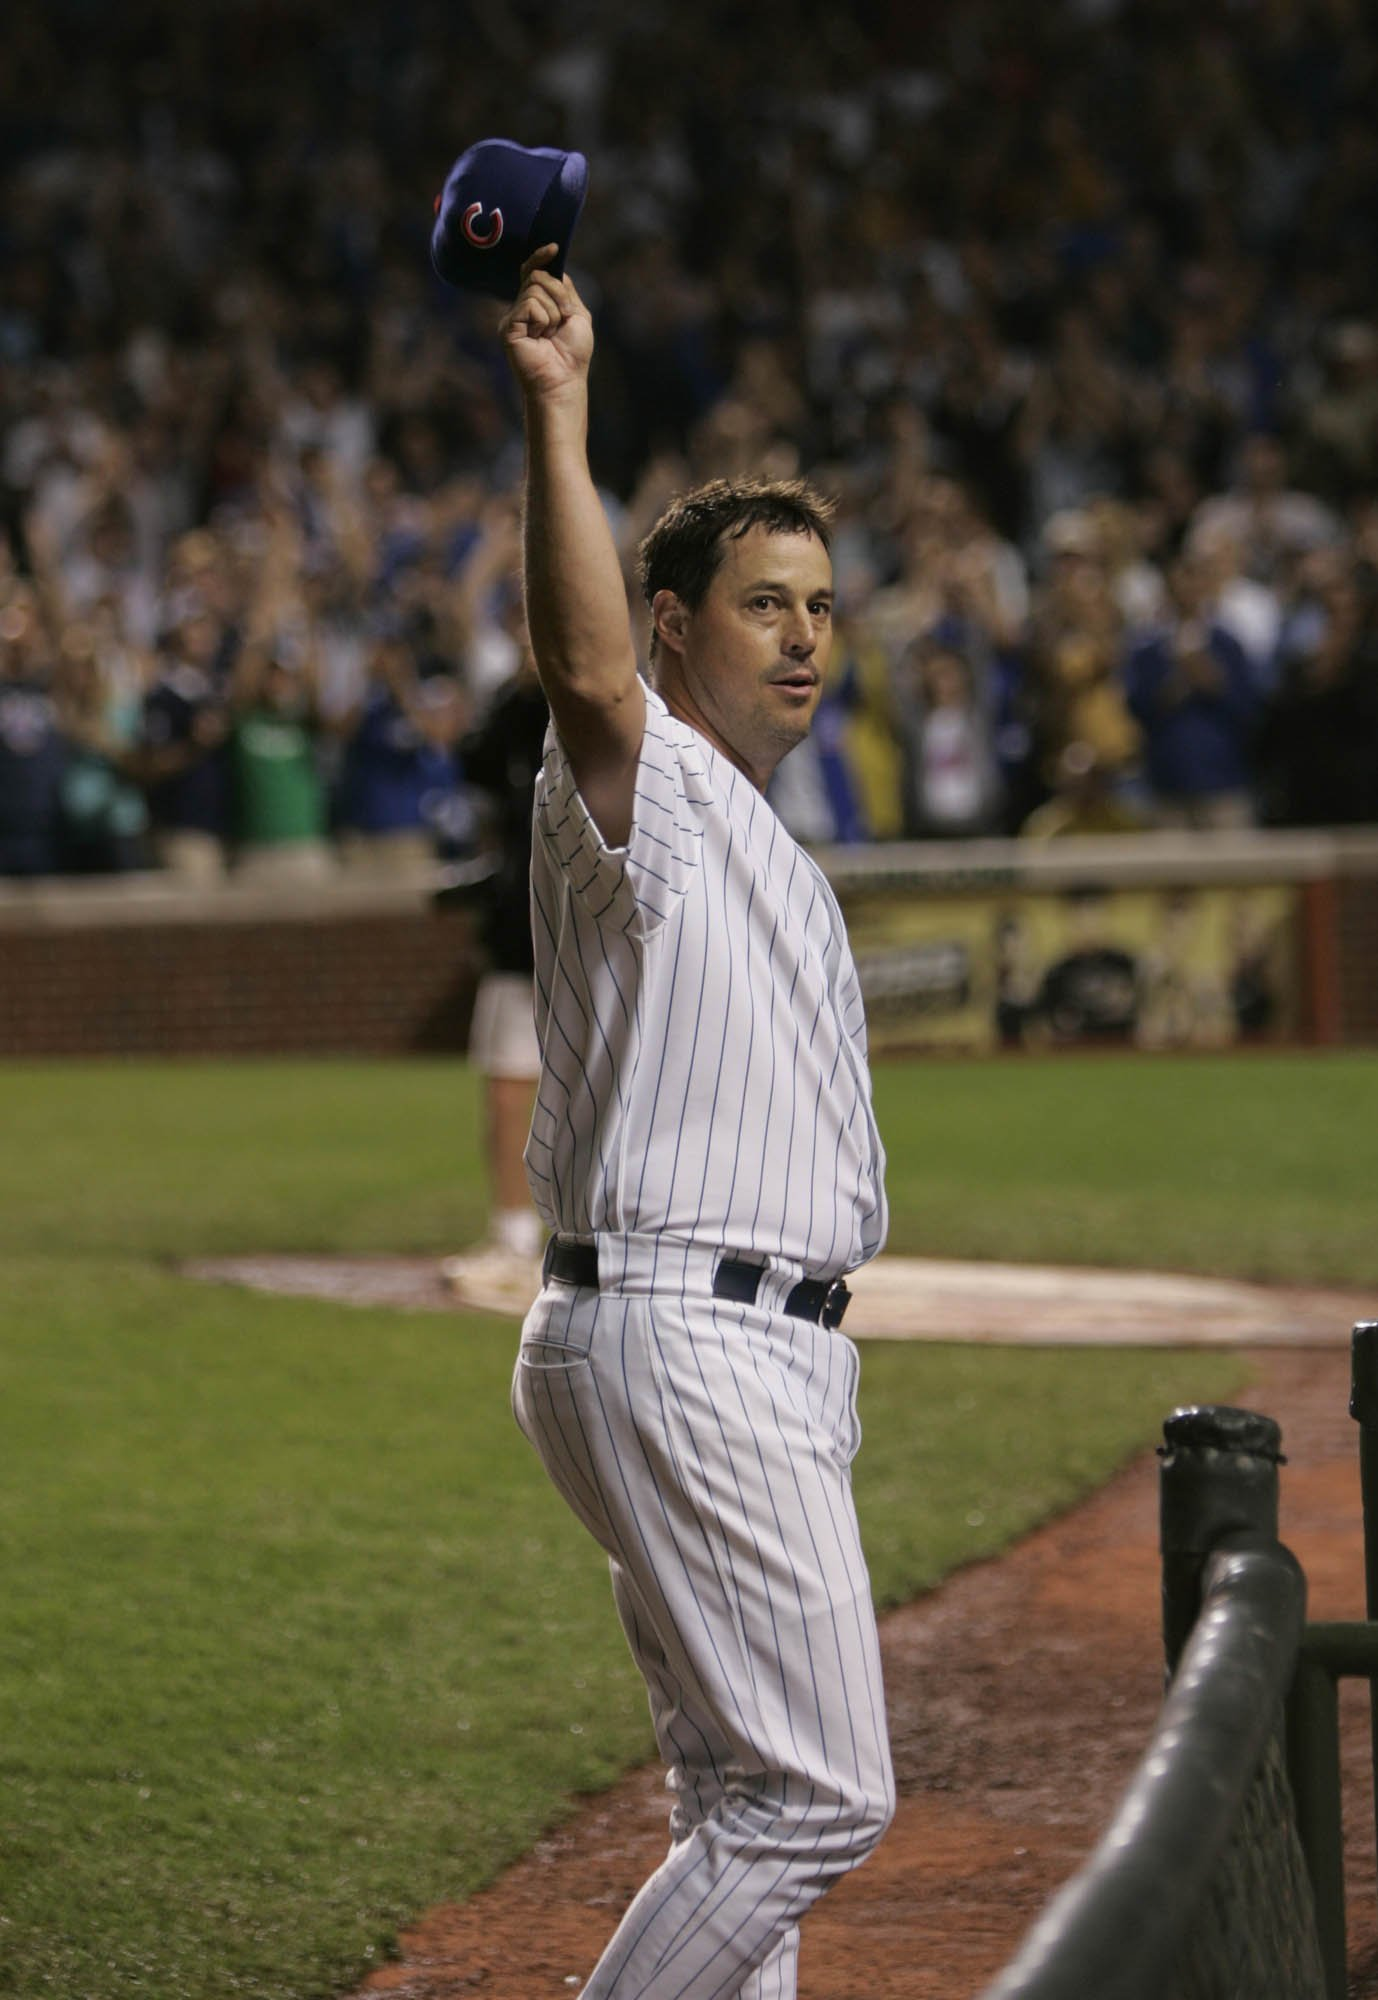 Ct-greg-maddux-strikeout-july-26-2005